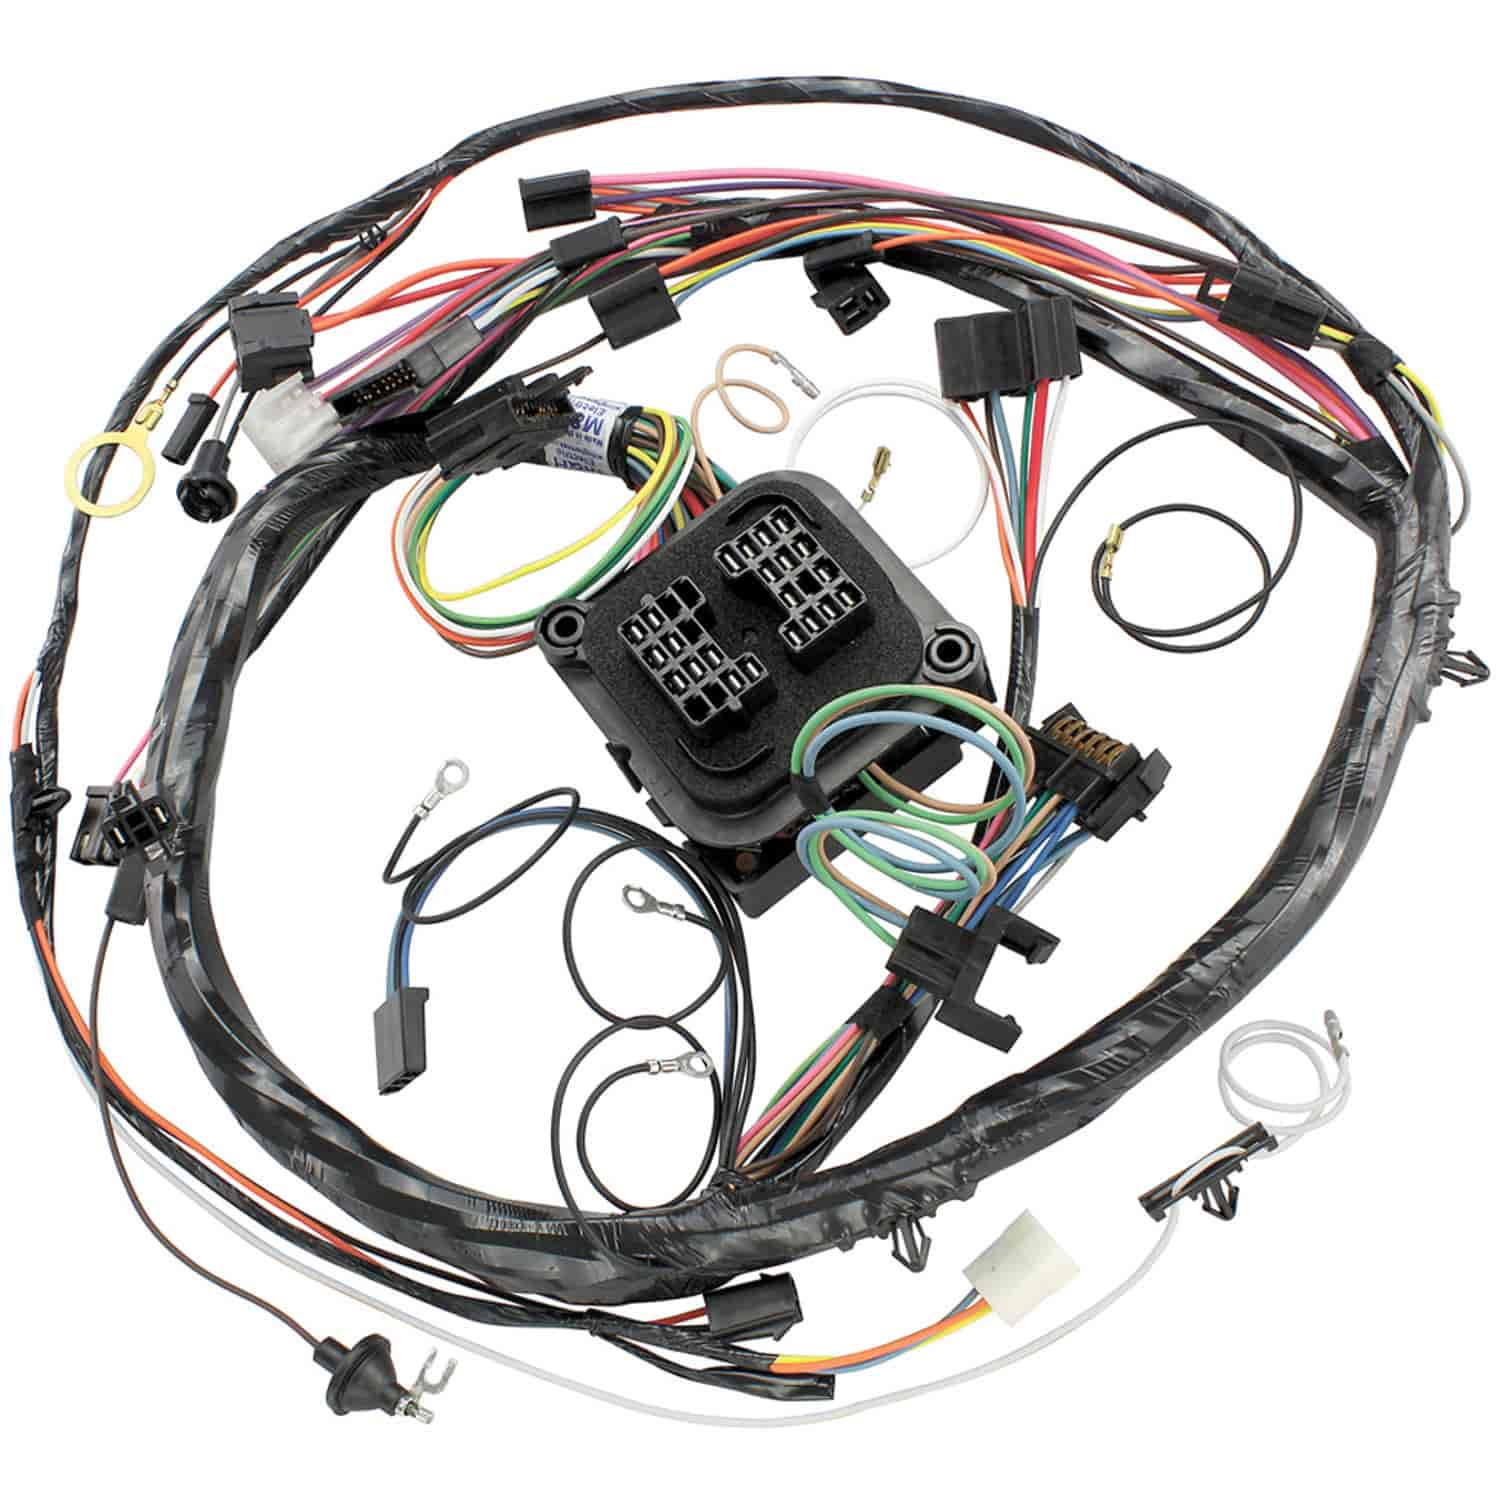 Chevelle Wiring Harness Everything About Diagram Restoparts 15065 Dash 1970 El Camino Monte Rh Jegs Com 1967